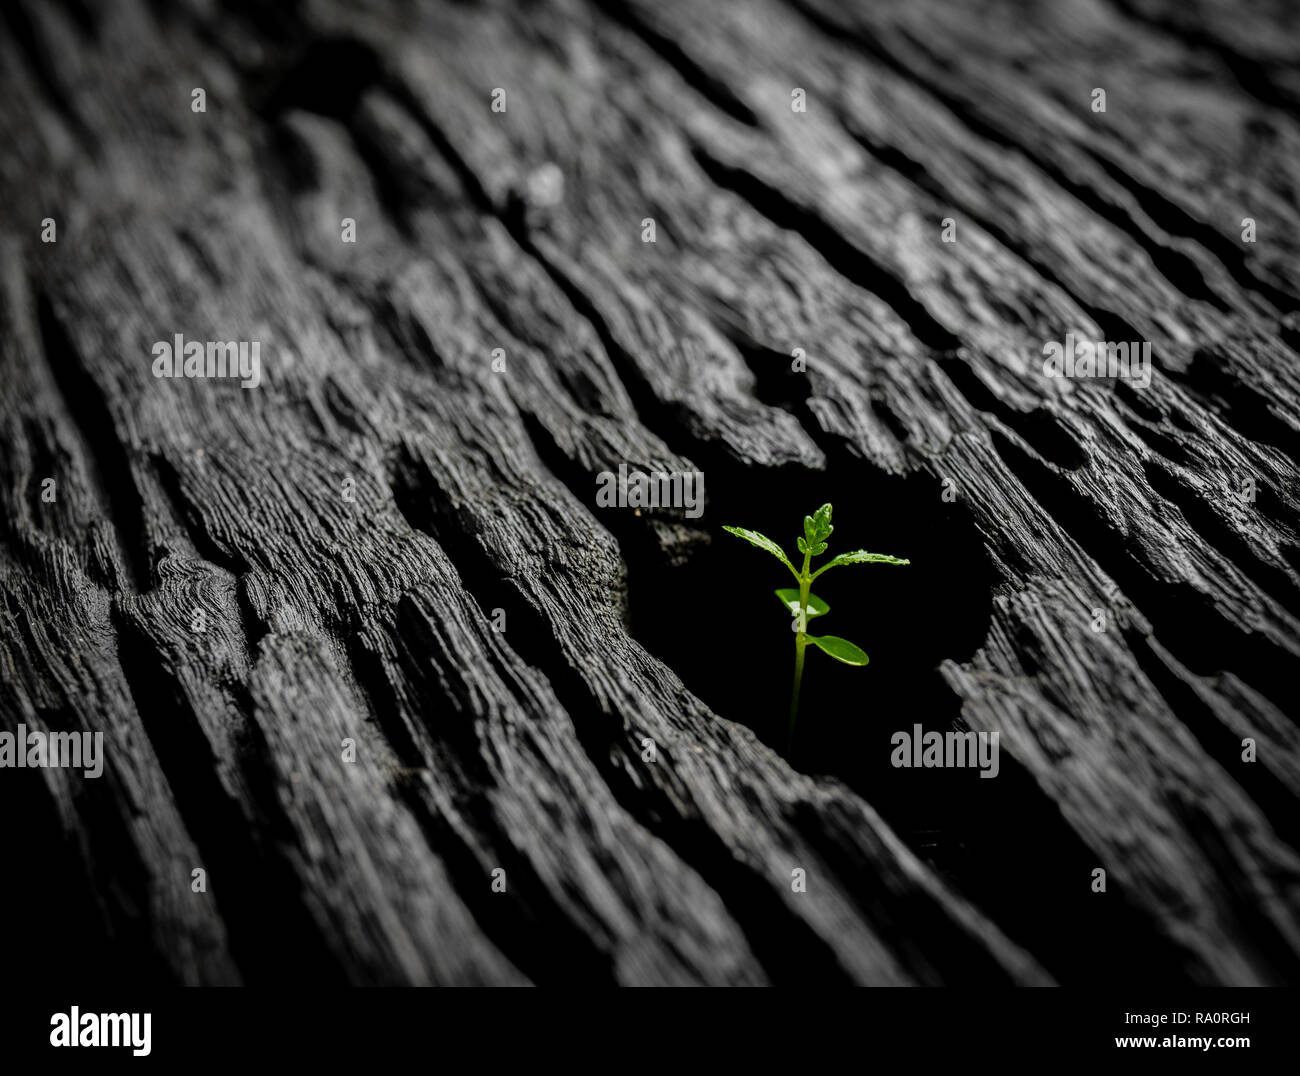 Shoot growing on dead wood, a message of hope and inspiration - Stock Image